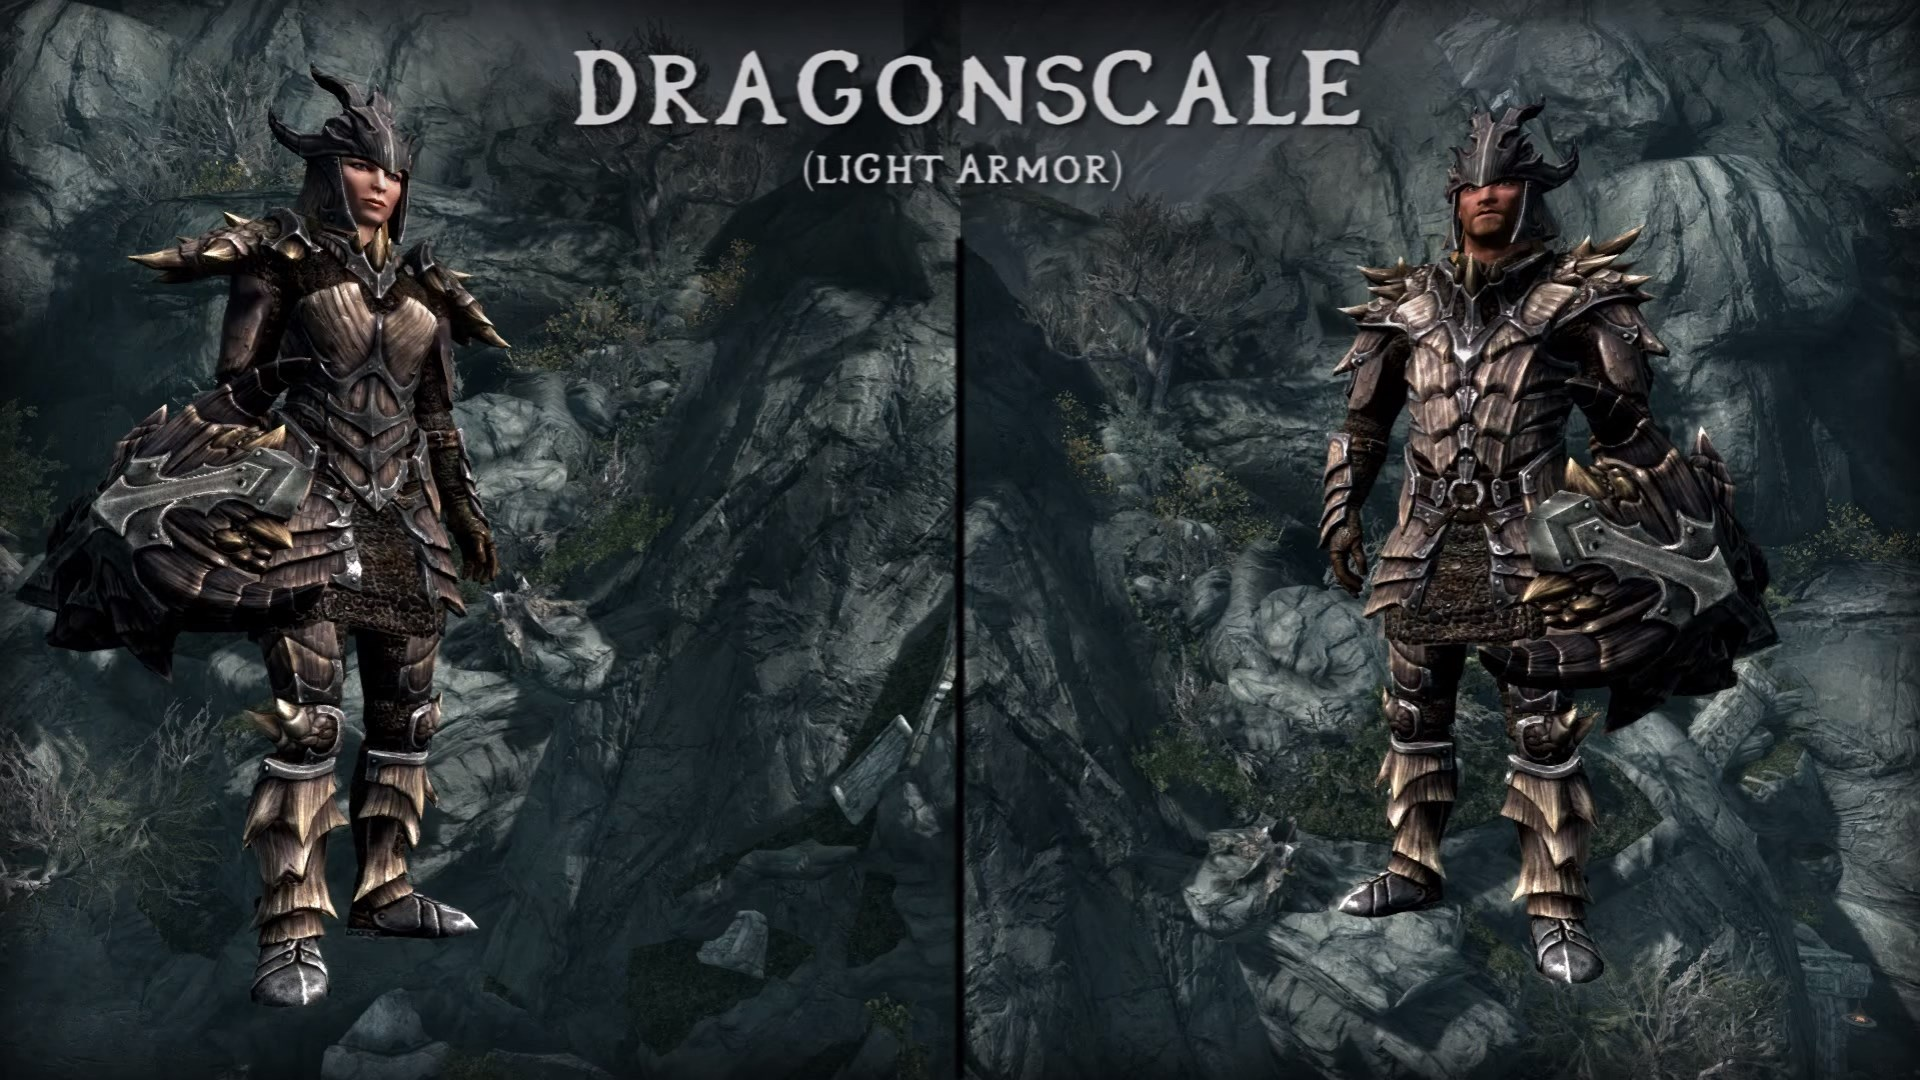 Skyrim Dragonscale Armor (Light Armor)